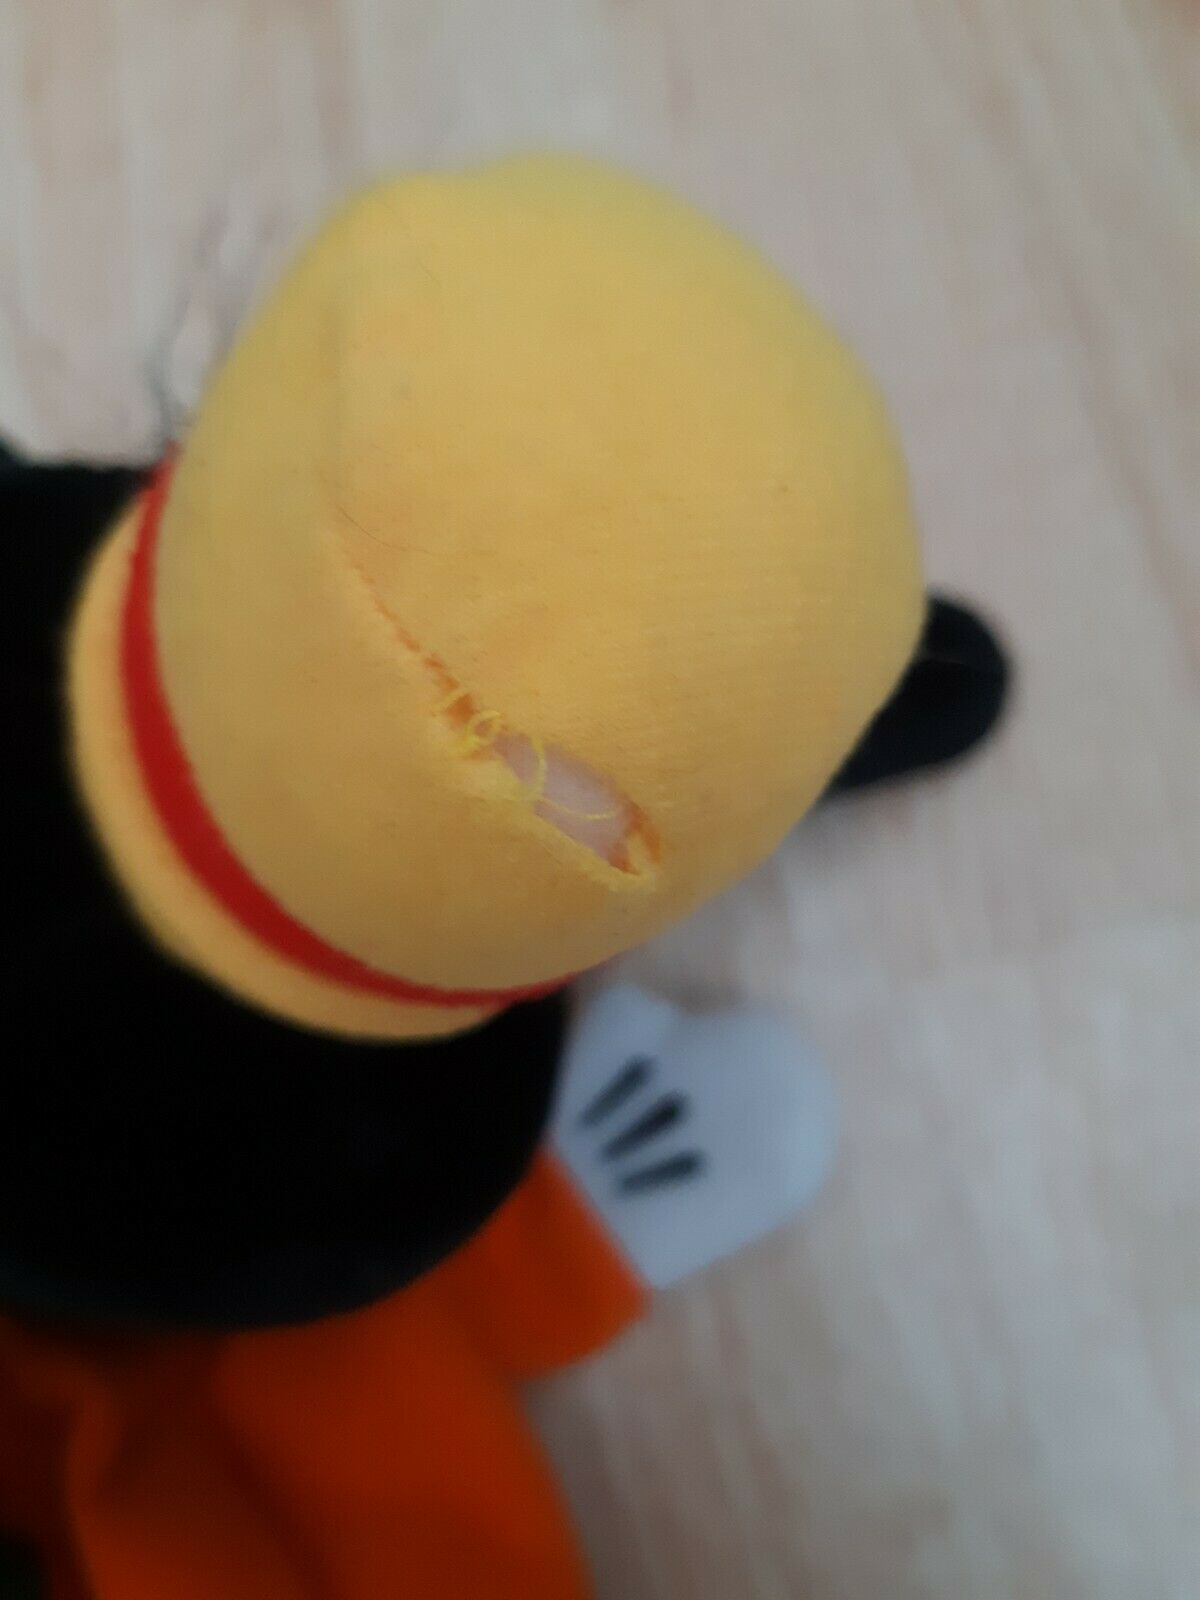 Vintage Disney Parks Goofy Hand Puppet Plush Stuffed Animal 80's 3D Head Toy